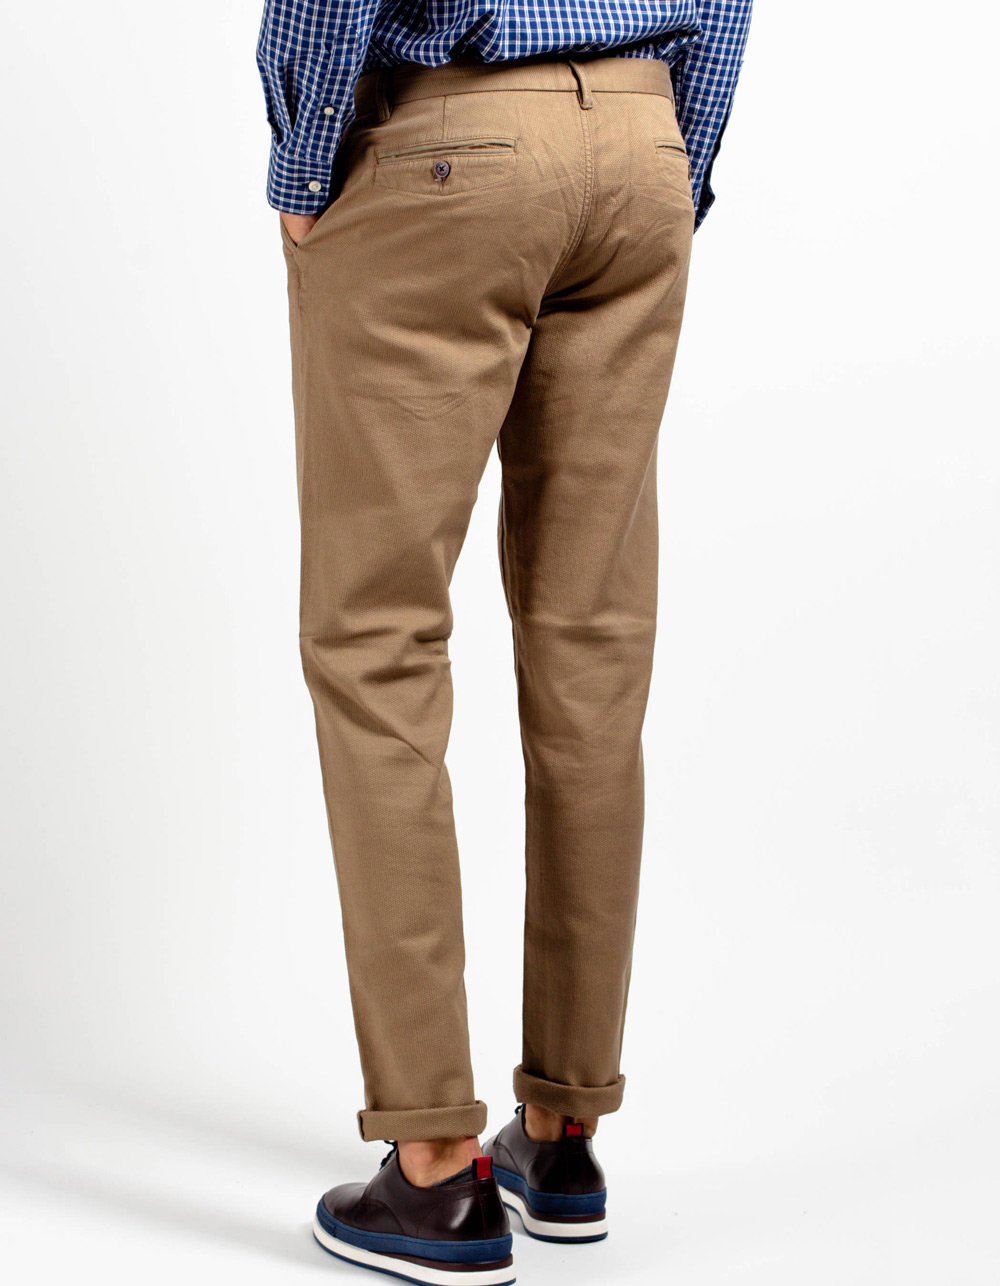 Beige micro-structure pant. - Backside